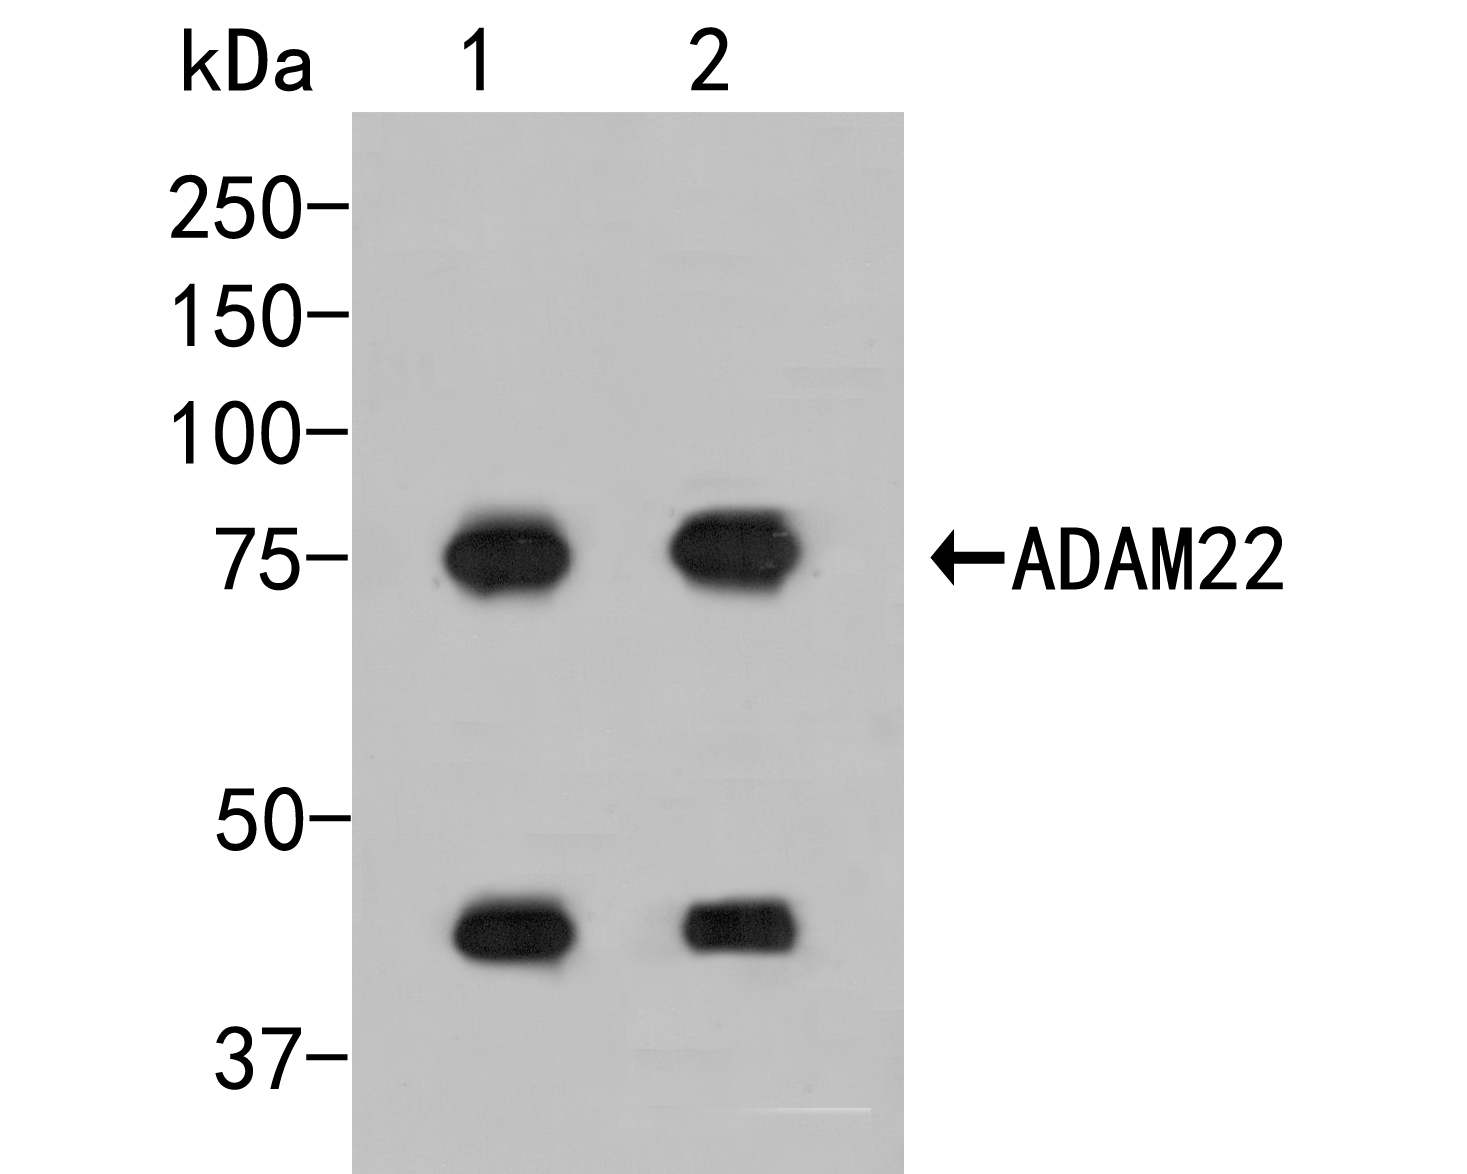 Western blot analysis of ADAM22 on different lysates. Proteins were transferred to a PVDF membrane and blocked with 5% BSA in PBS for 1 hour at room temperature. The primary antibody (ER2001-24, 1/500) was used in 5% BSA at room temperature for 2 hours. Goat Anti-Rabbit IgG - HRP Secondary Antibody (HA1001) at 1:5,000 dilution was used for 1 hour at room temperature.<br /> Positive control: <br /> Lane 1: Mouse cerebellum tissue lysate<br /> Lane 2: Rat brain tissue tissue lysate